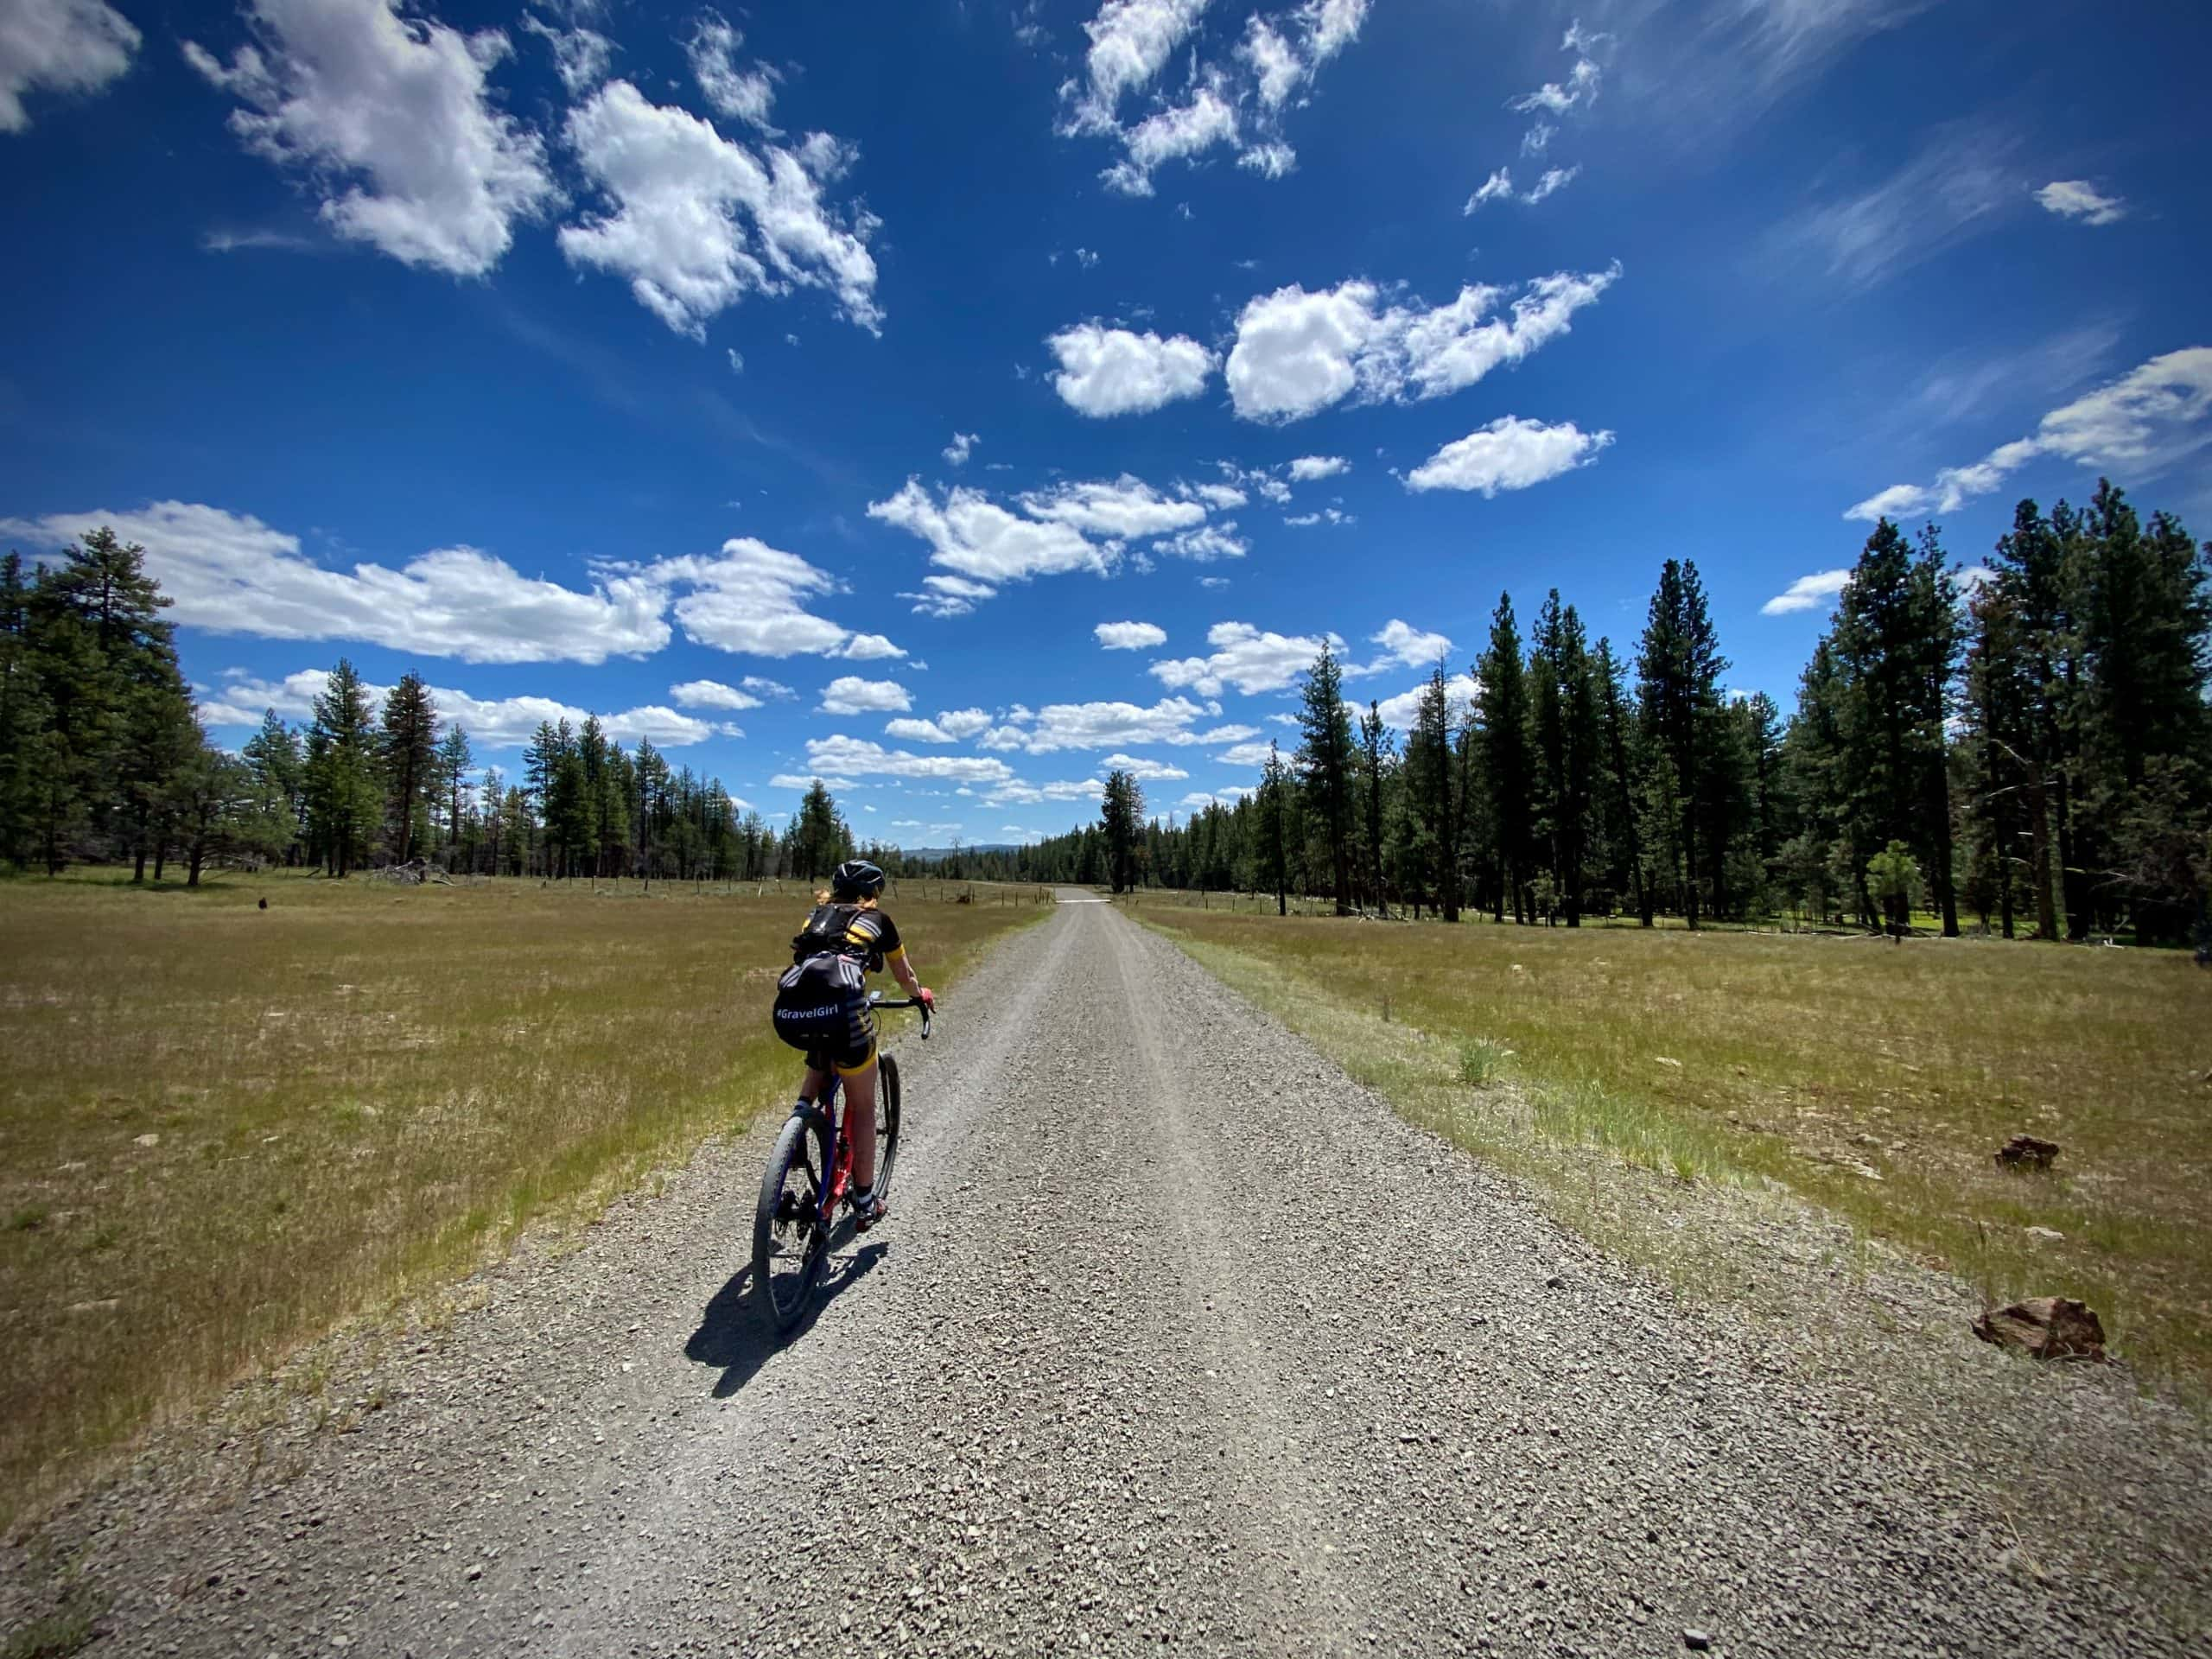 Gravel cyclist on road with open rangelands in Oregon.